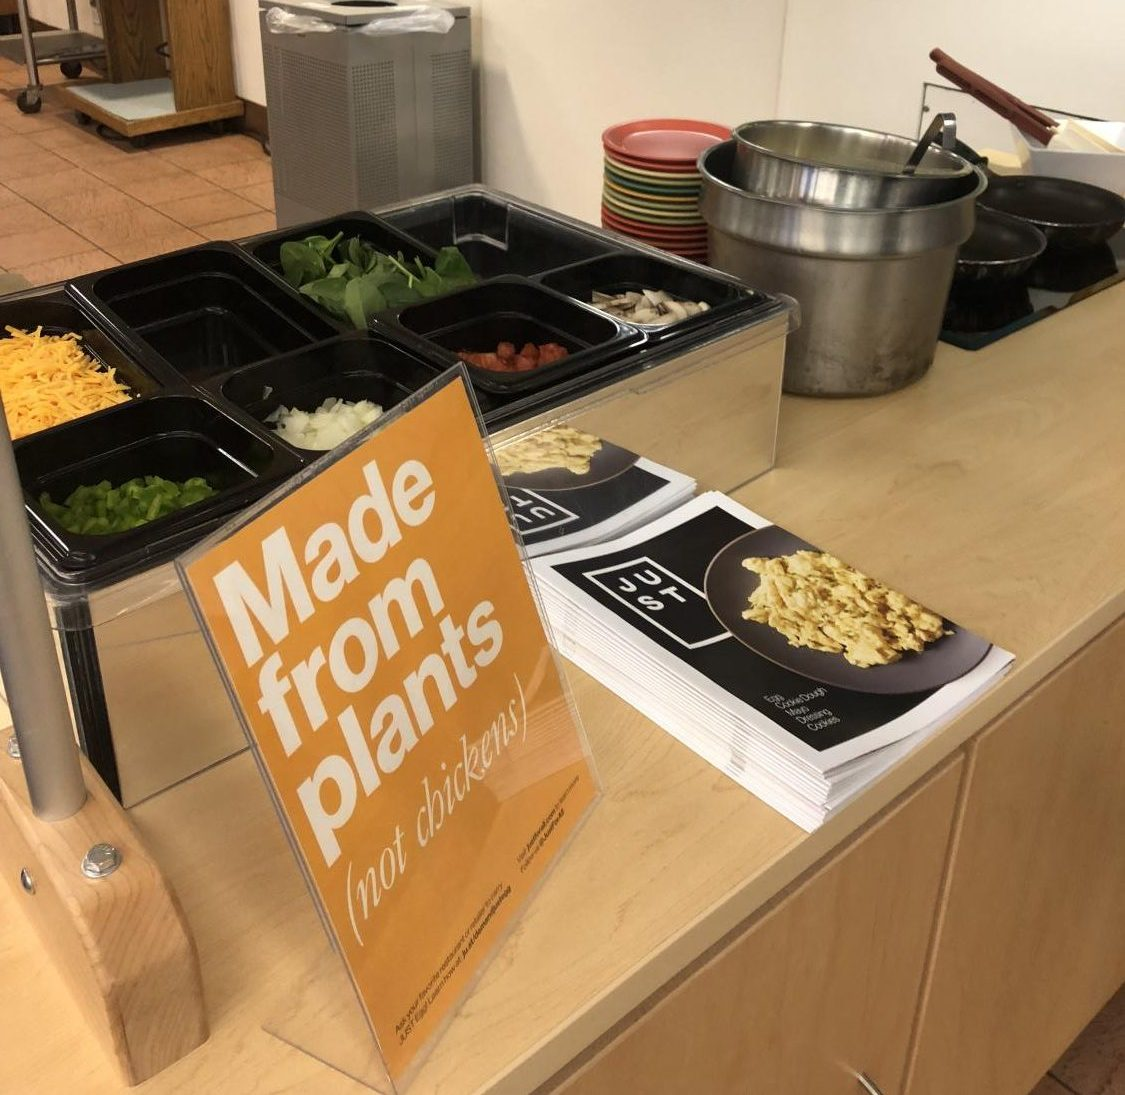 LAR dining hall offers a vegan egg substitute from JUST Eggs, which comes in both liquid and patty forms. The substitute is made out of mung beans and will help expand food options for students with special dietary needs.